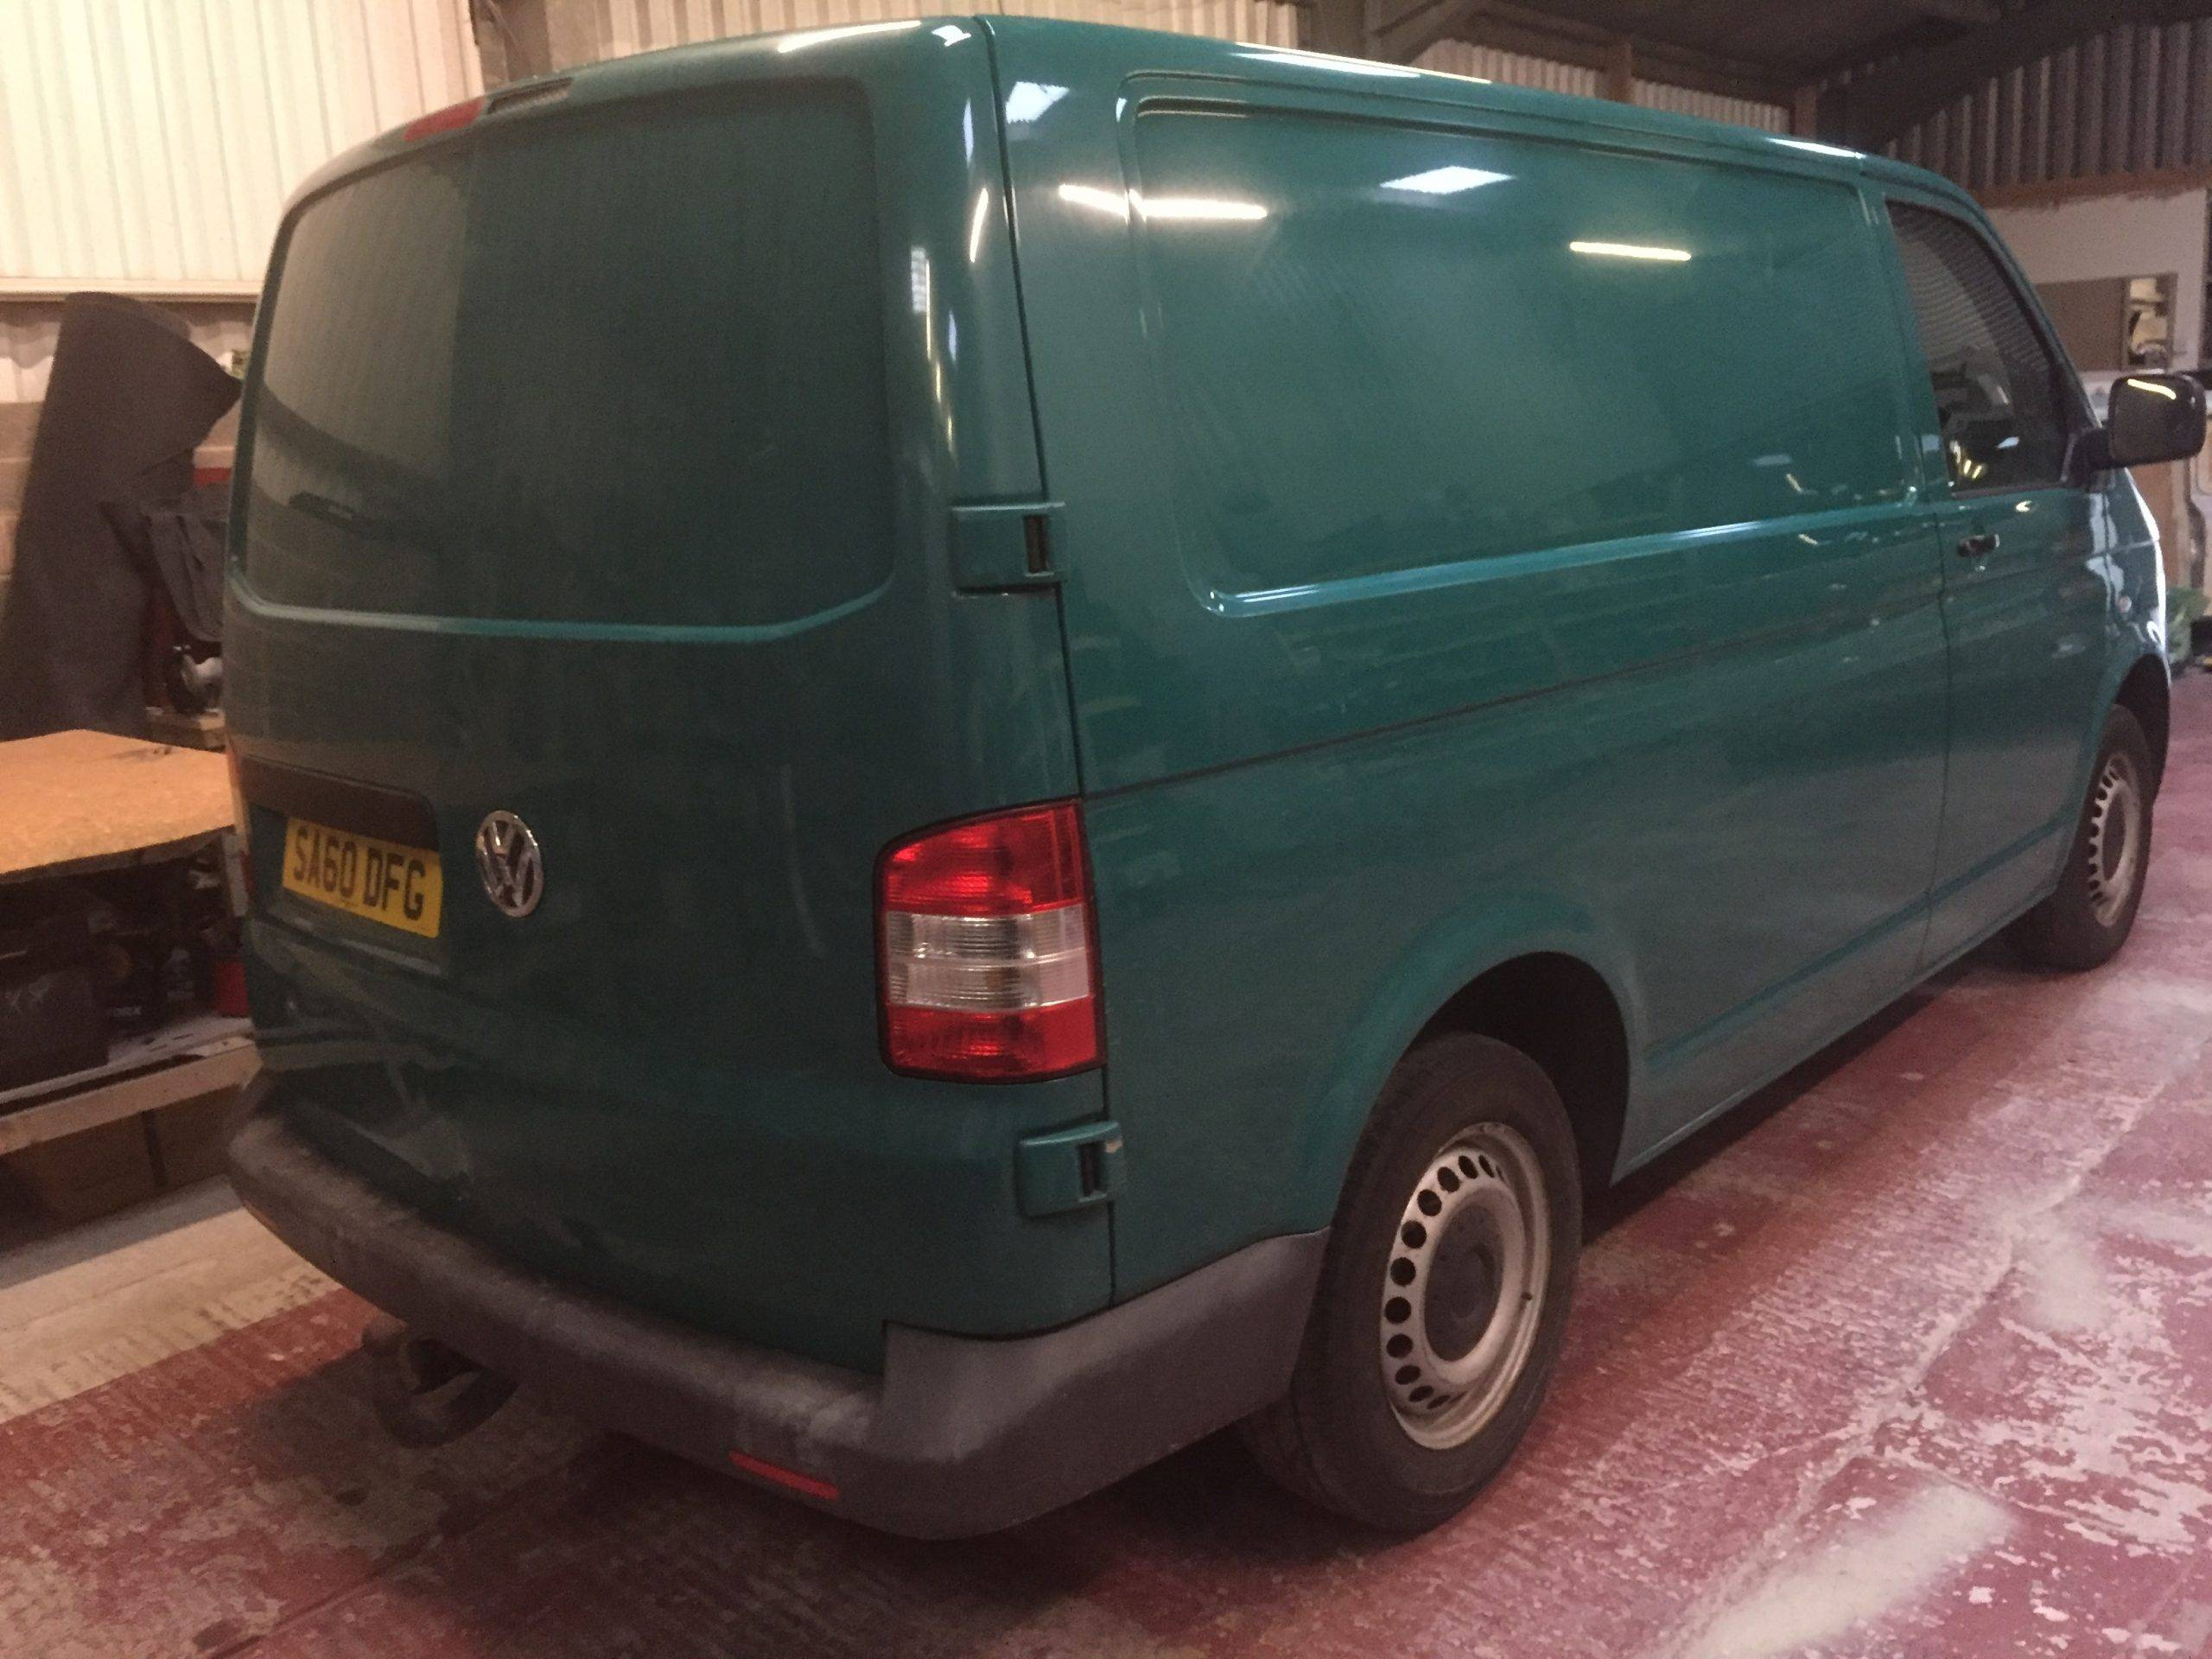 green camper van getting paint job